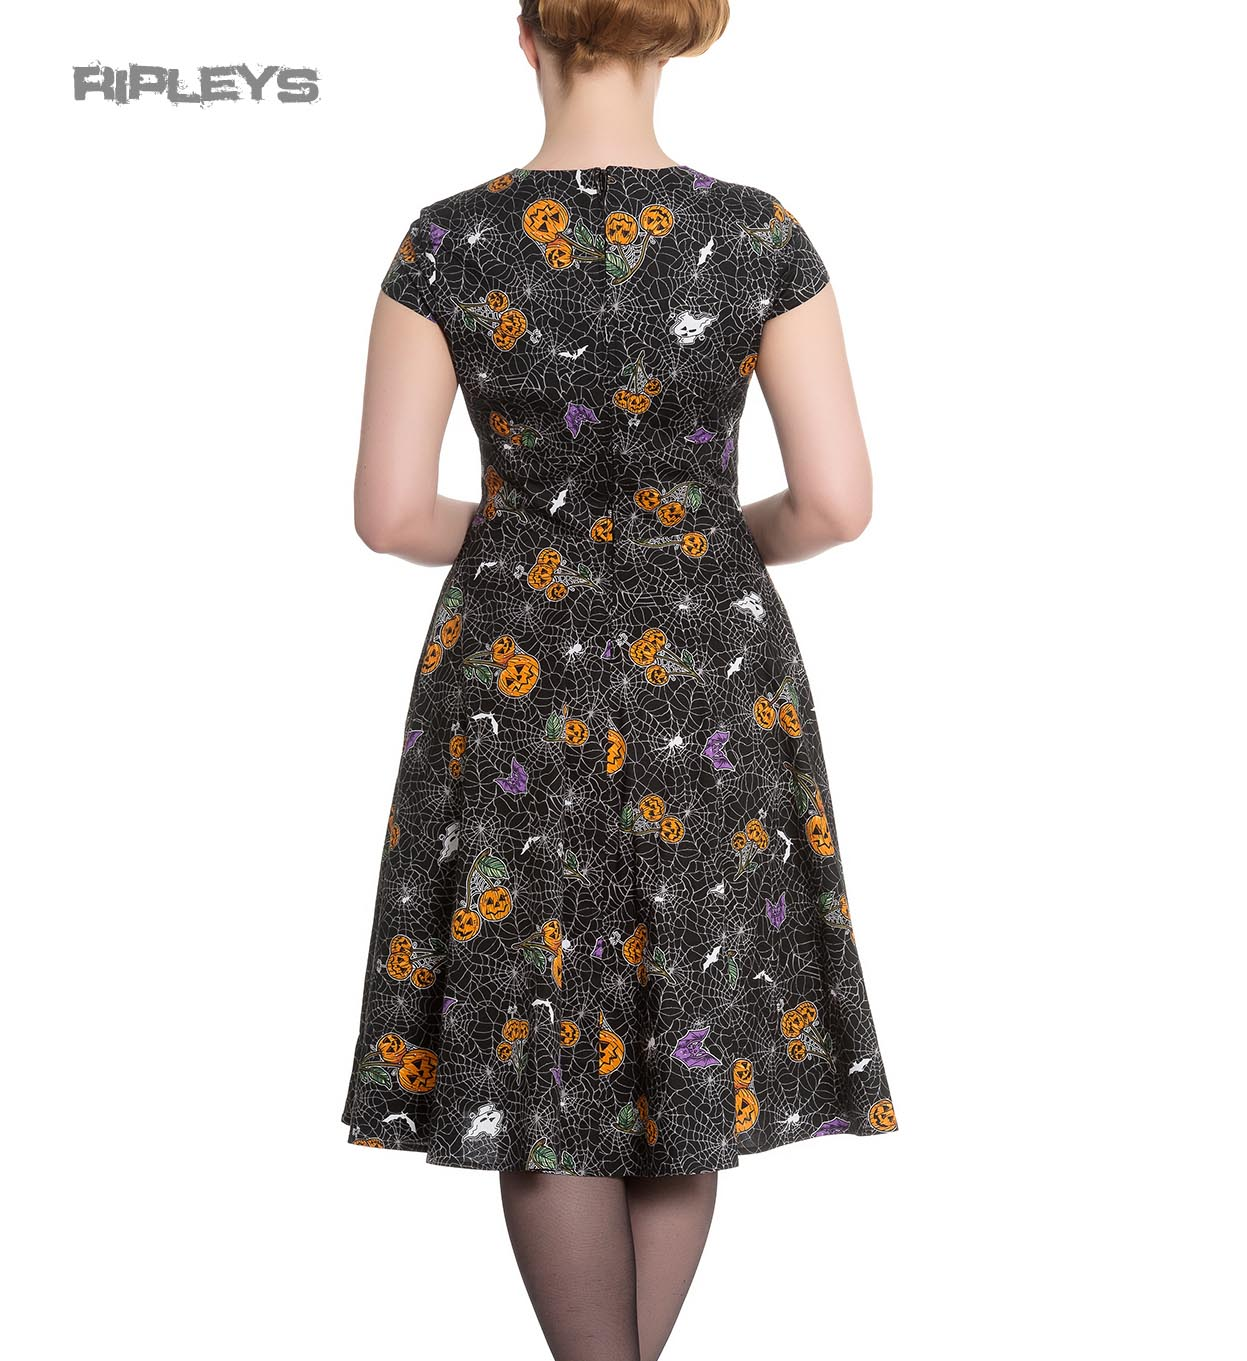 Hell-Bunny-Black-Pinup-50s-Goth-Webs-Dress-HARLOW-Halloween-All-Sizes thumbnail 8